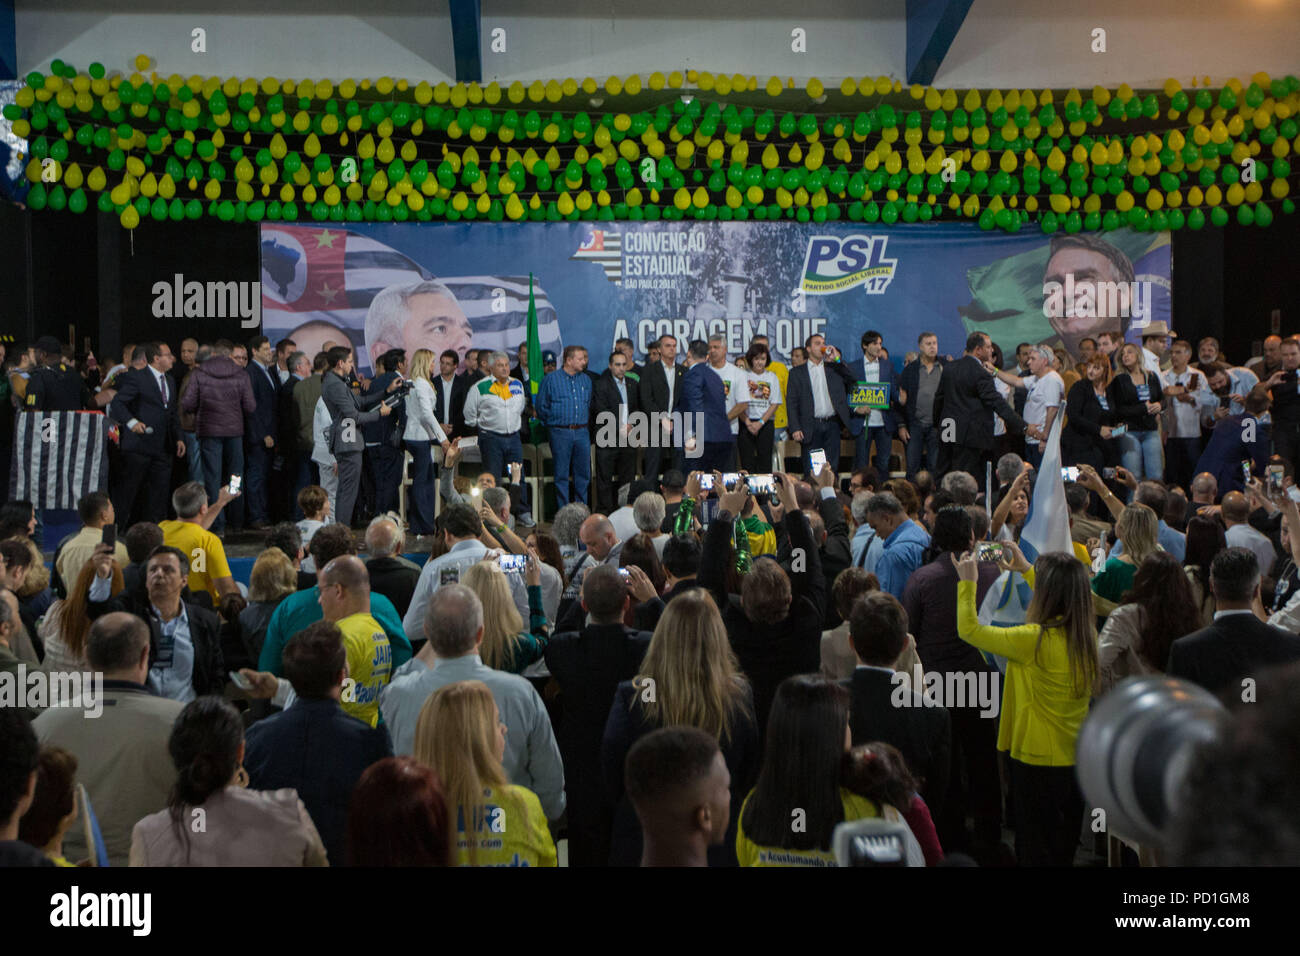 Sao Paulo, Sao Paulo, Brazil. 5th Aug, 2018. PSL (Social Liberal Party) convention in São Paulo, Brazil. The party candidates for president, deputy and senator attended the event. Credit: Paulo Lopes/ZUMA Wire/Alamy Live News - Stock Image